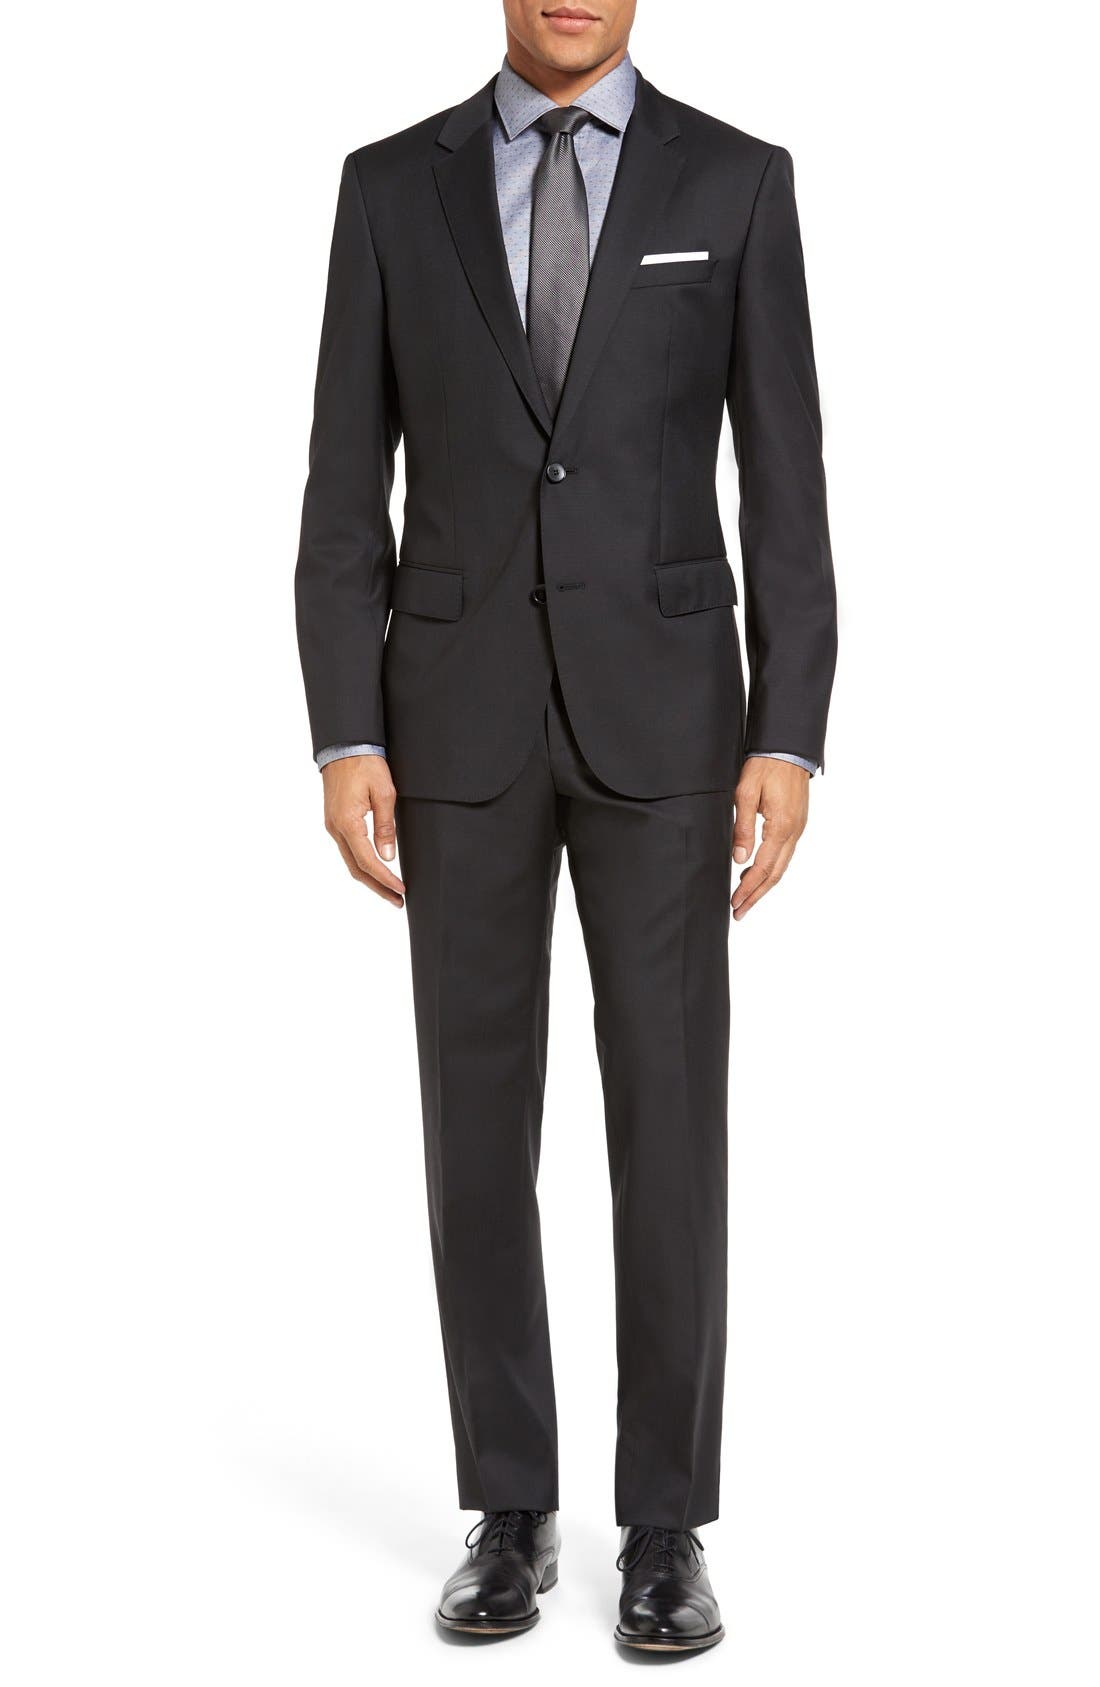 Alternate Image 1 Selected - BOSS Huge/Genius Trim Fit Wool Suit